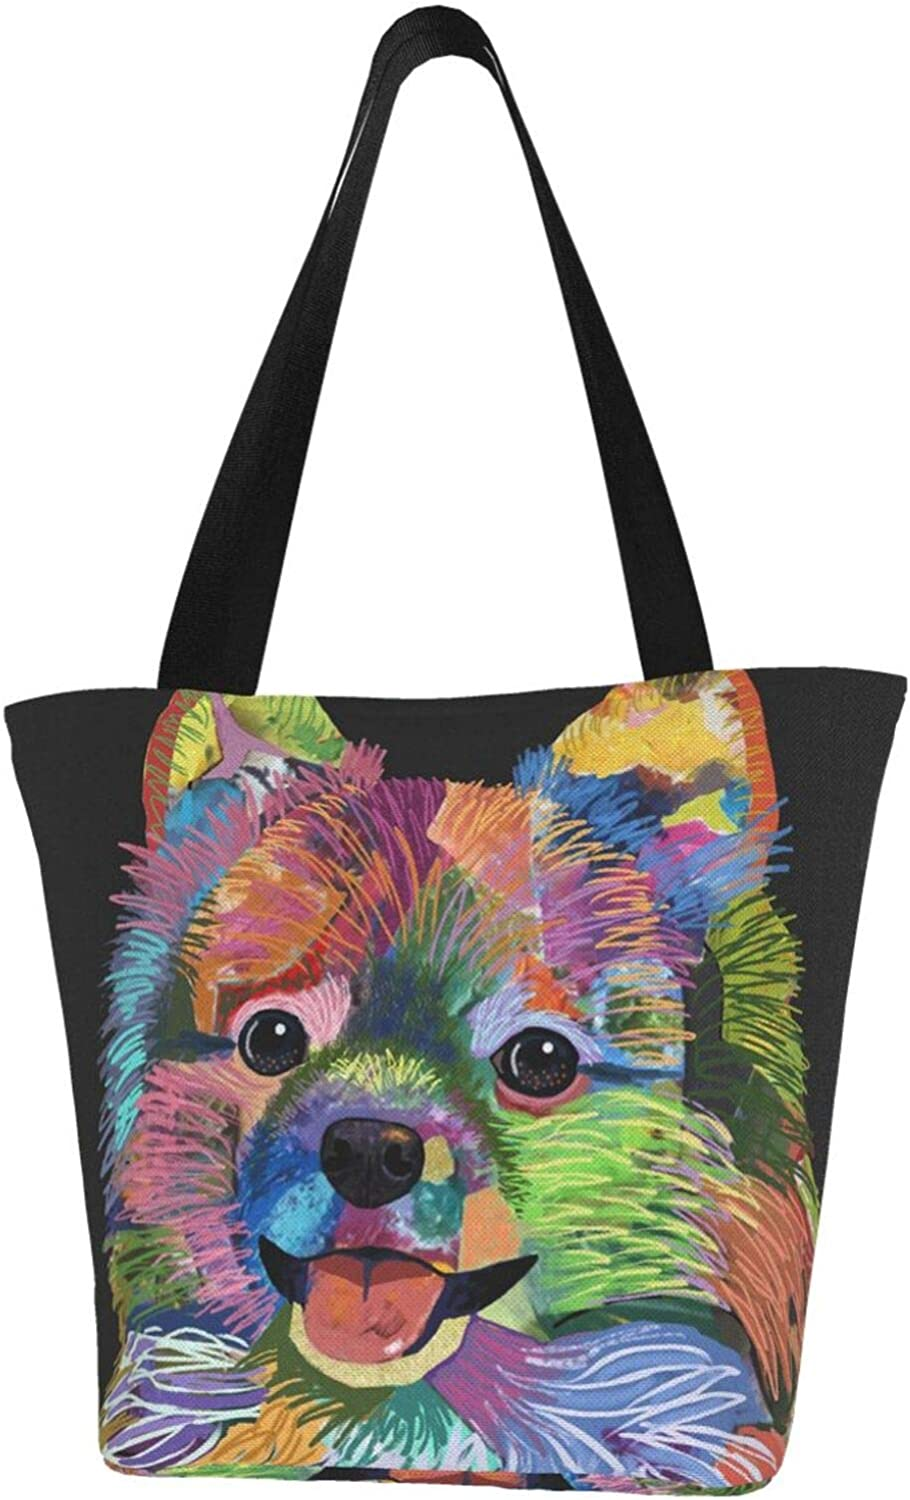 Colorful Pomeranian Spitz Dog Cute Animal Wom Themed Oakland Mall Printed OFFer Pet